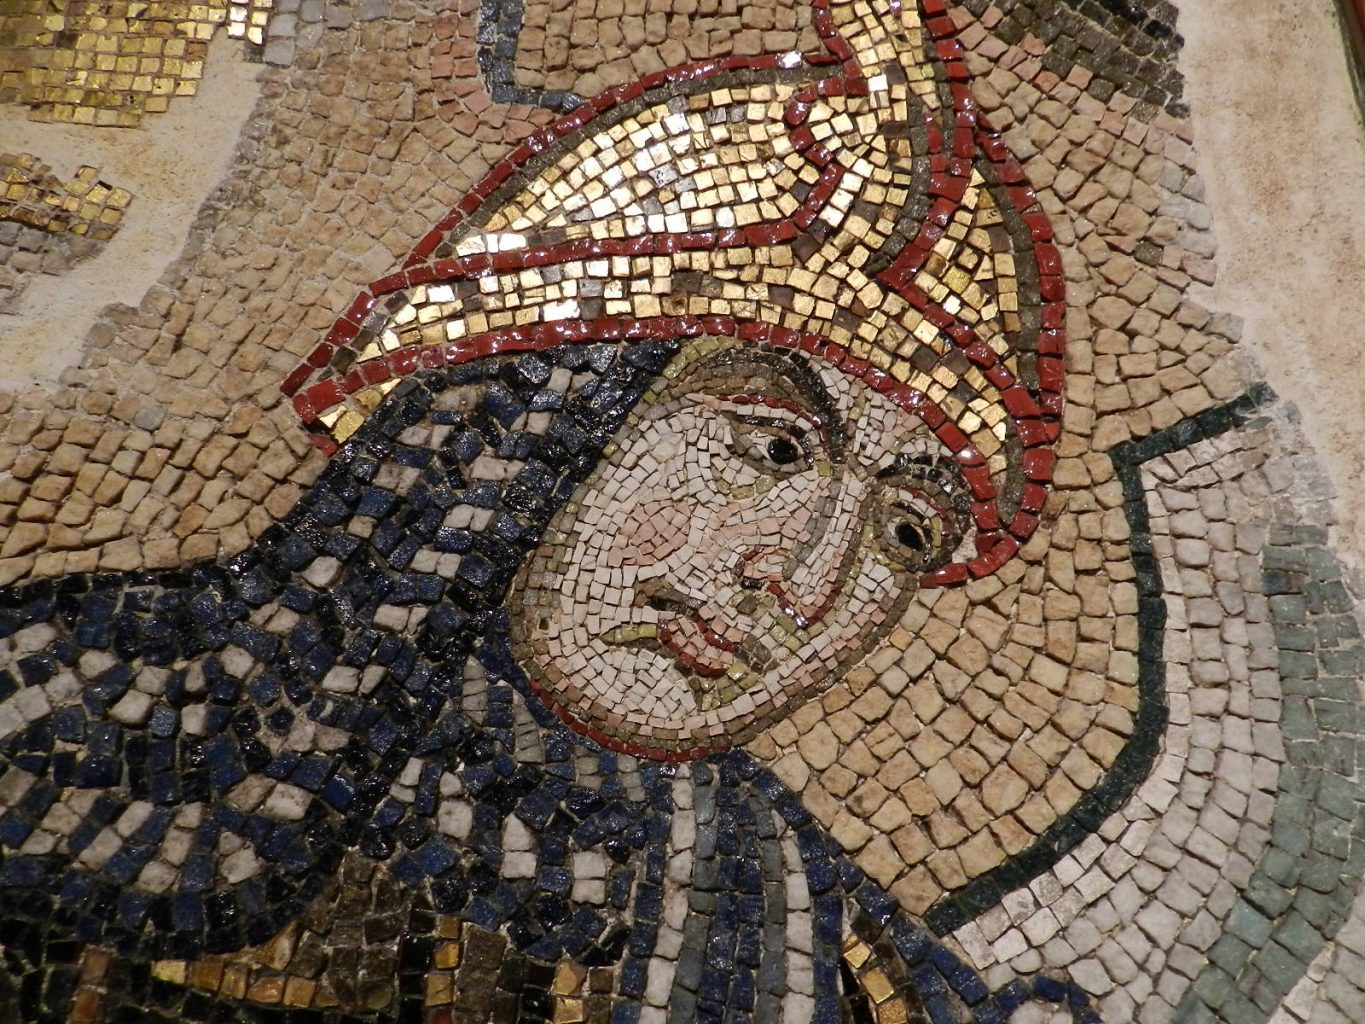 Mosaic faces of St. Mark's Basilica, Venice.